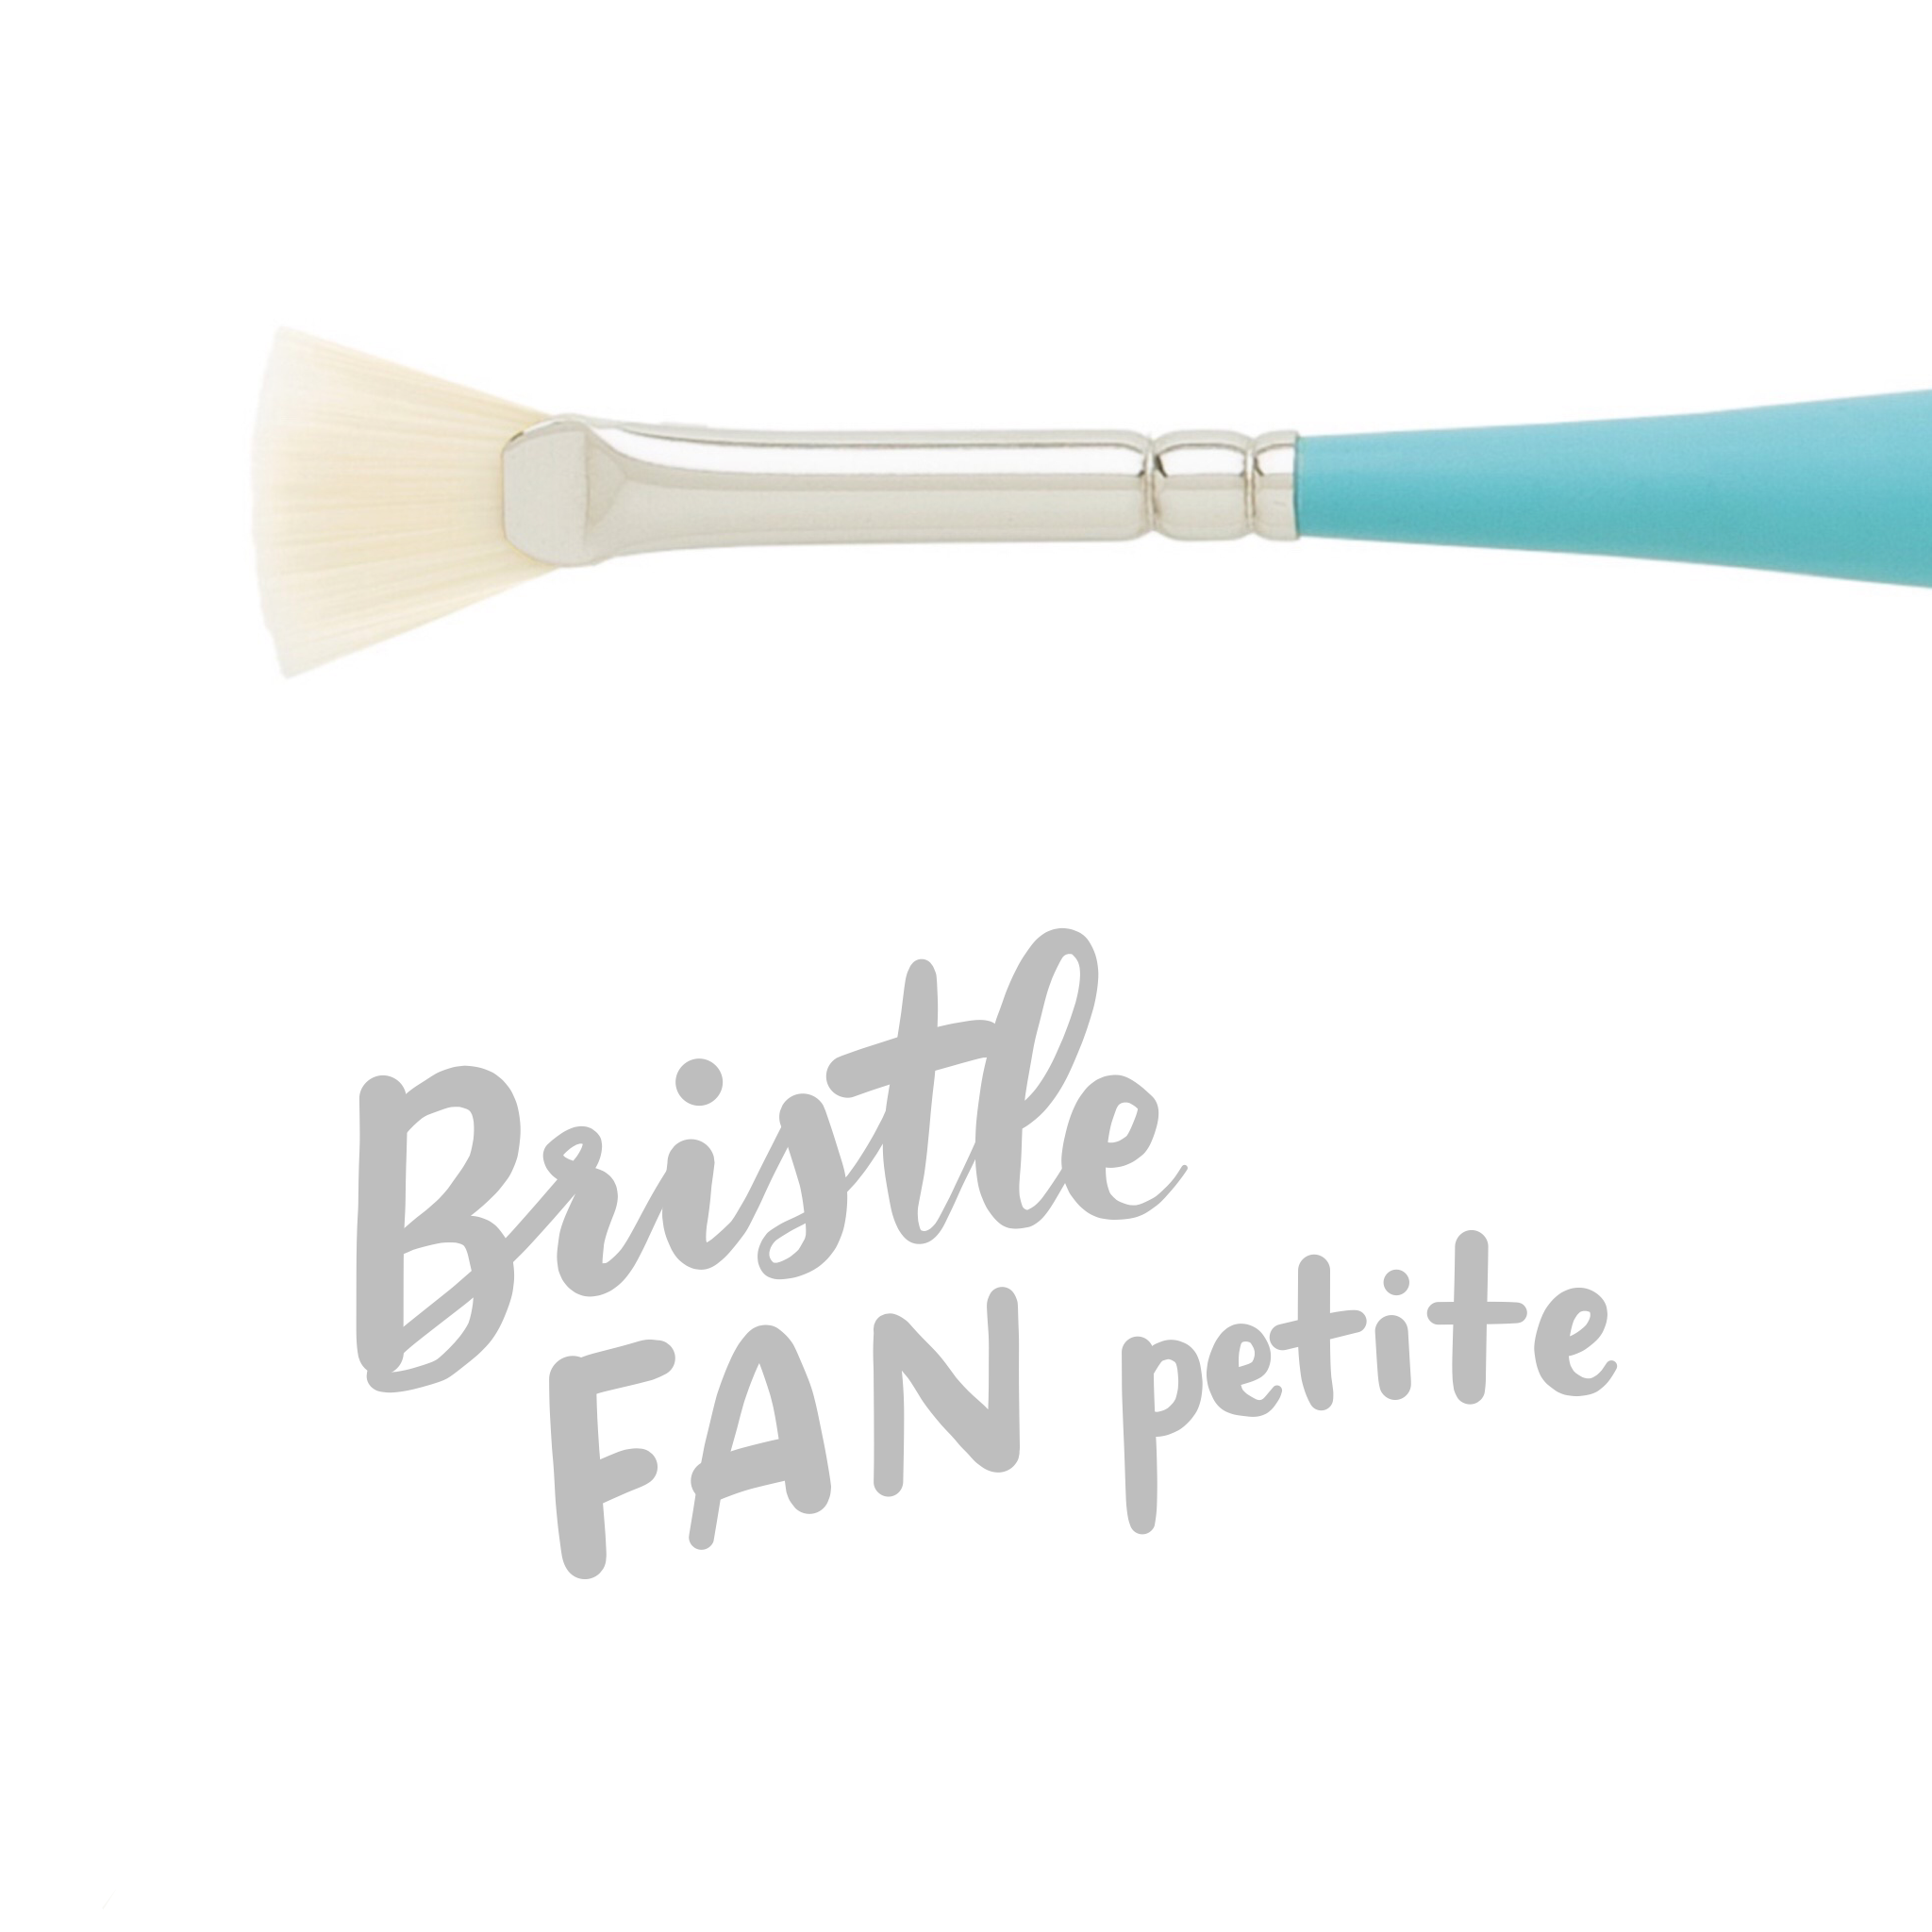 Princeton Select Artiste Mixed Media Paintbrushes - Bristle Fan (Petite) - by Princeton - K. A. Artist Shop